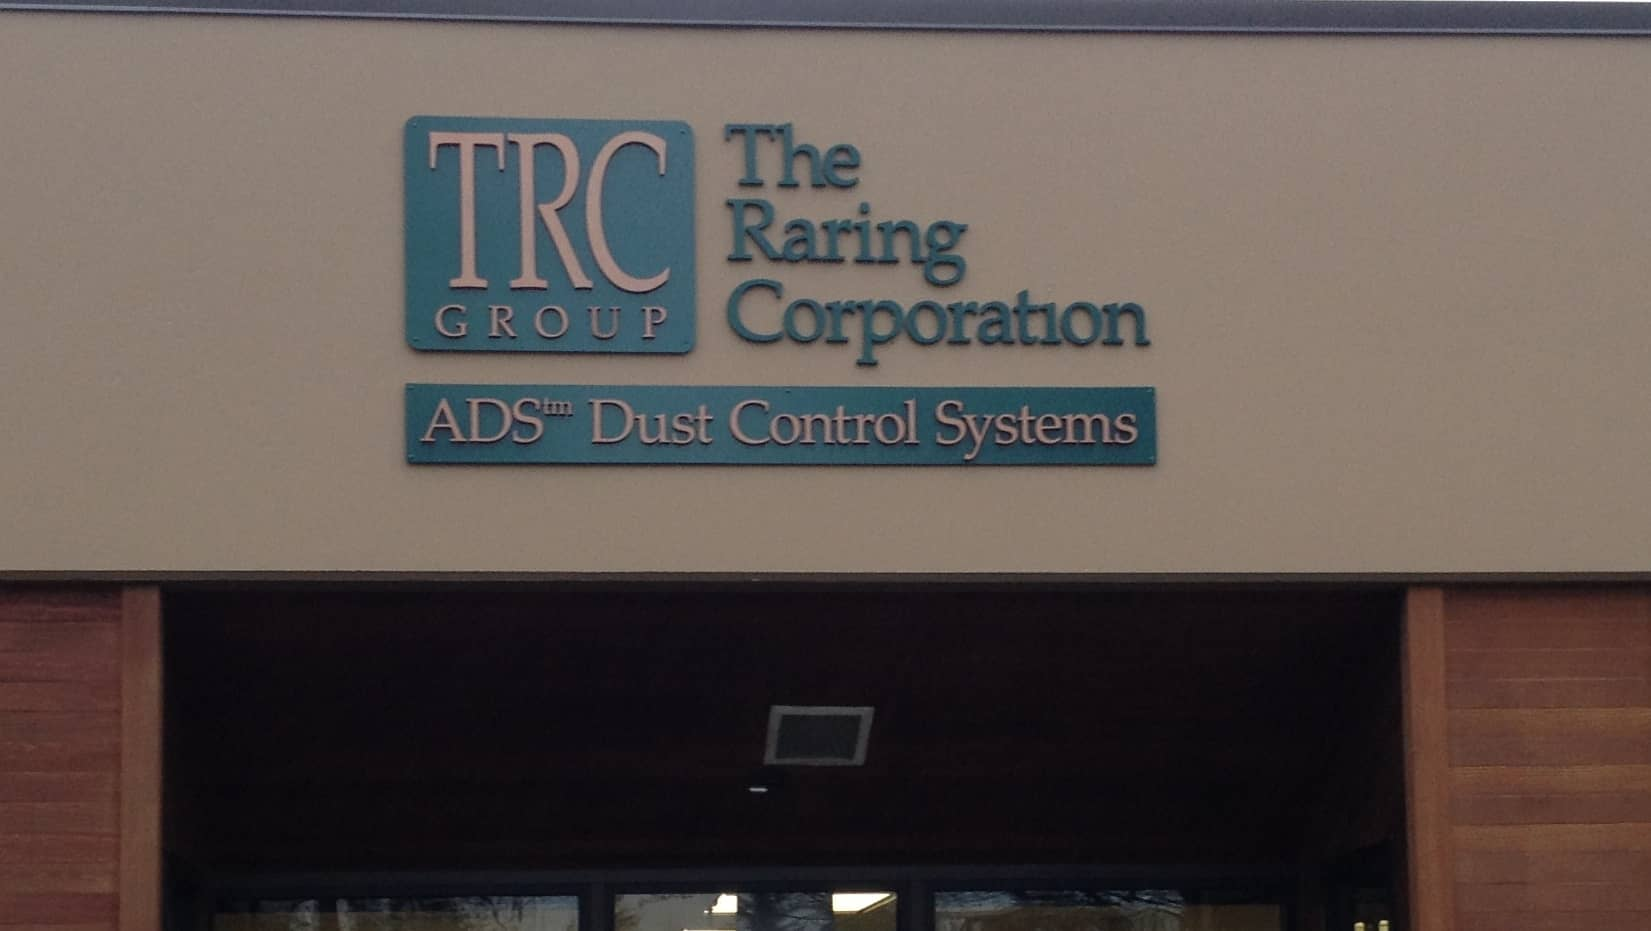 Raring Corp dimensional sign